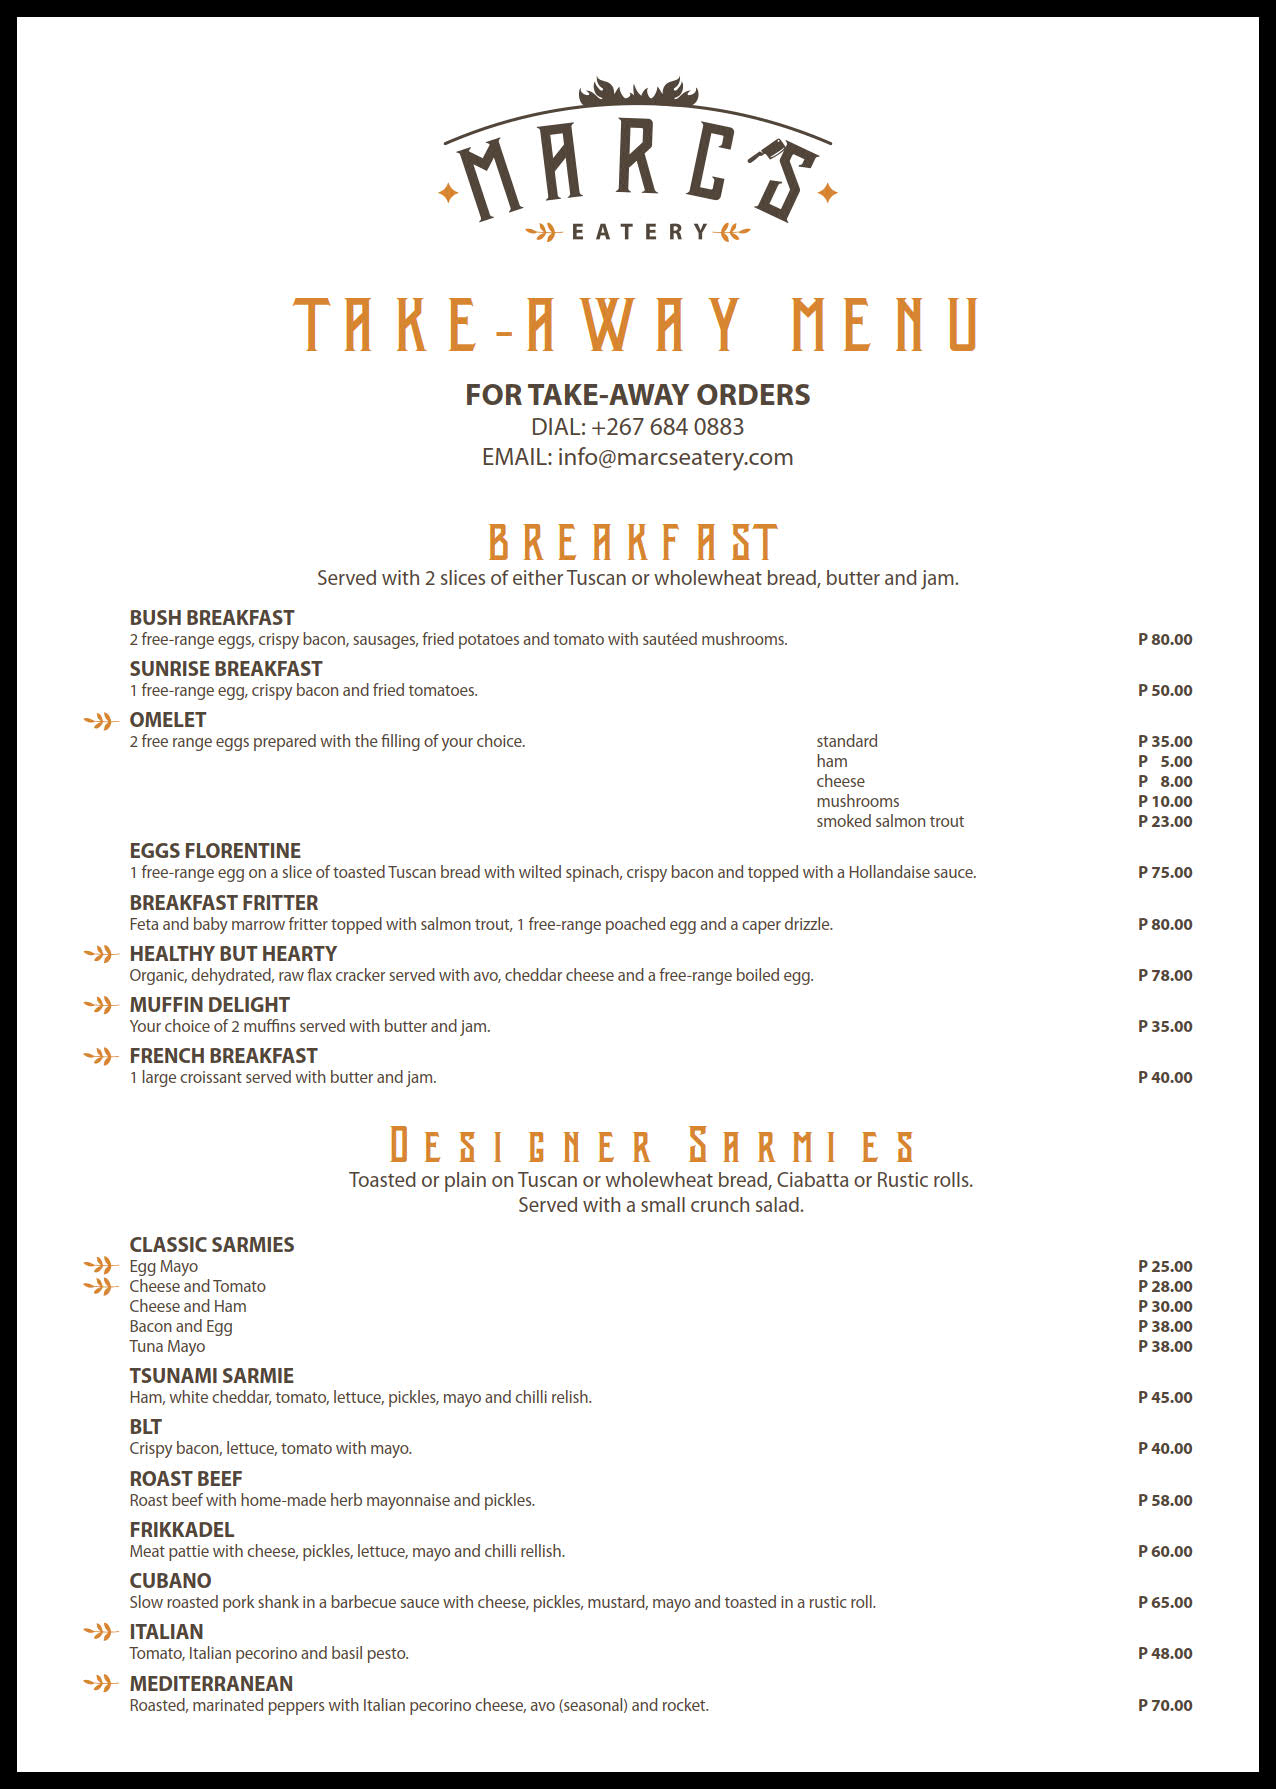 Marc's Eatery Take-Away Menu1